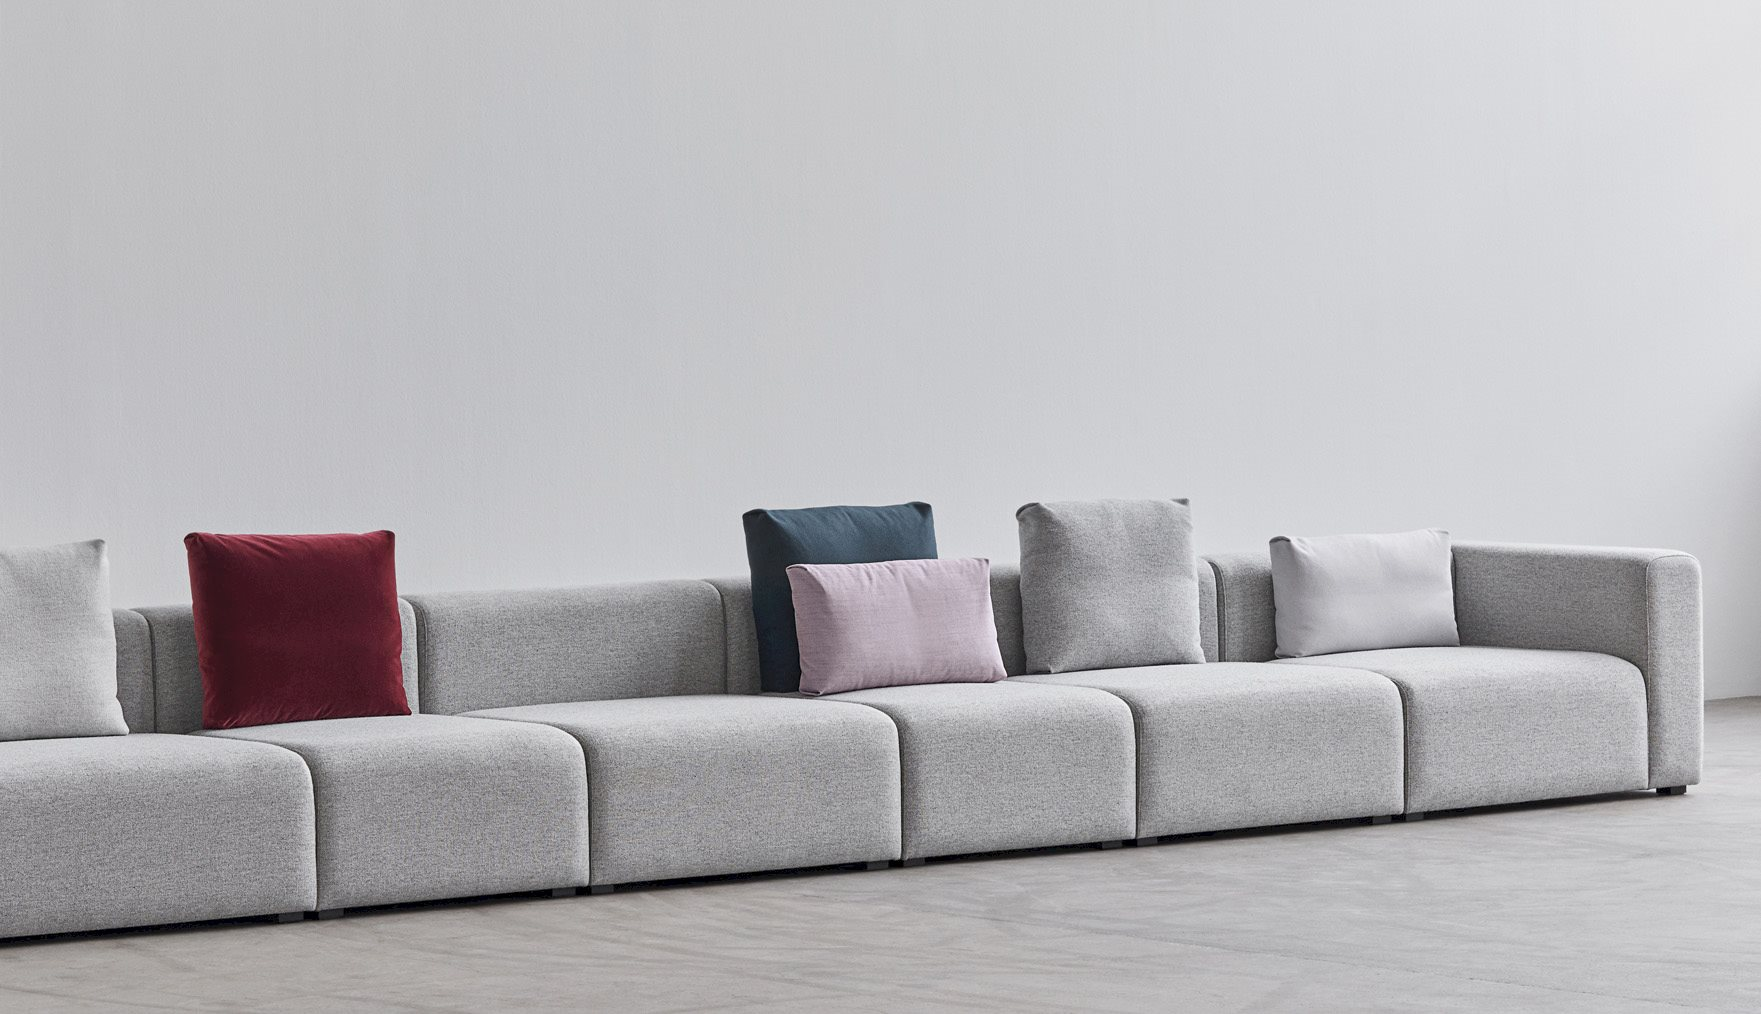 Mags Sofa Hay : Mags seater combination hay